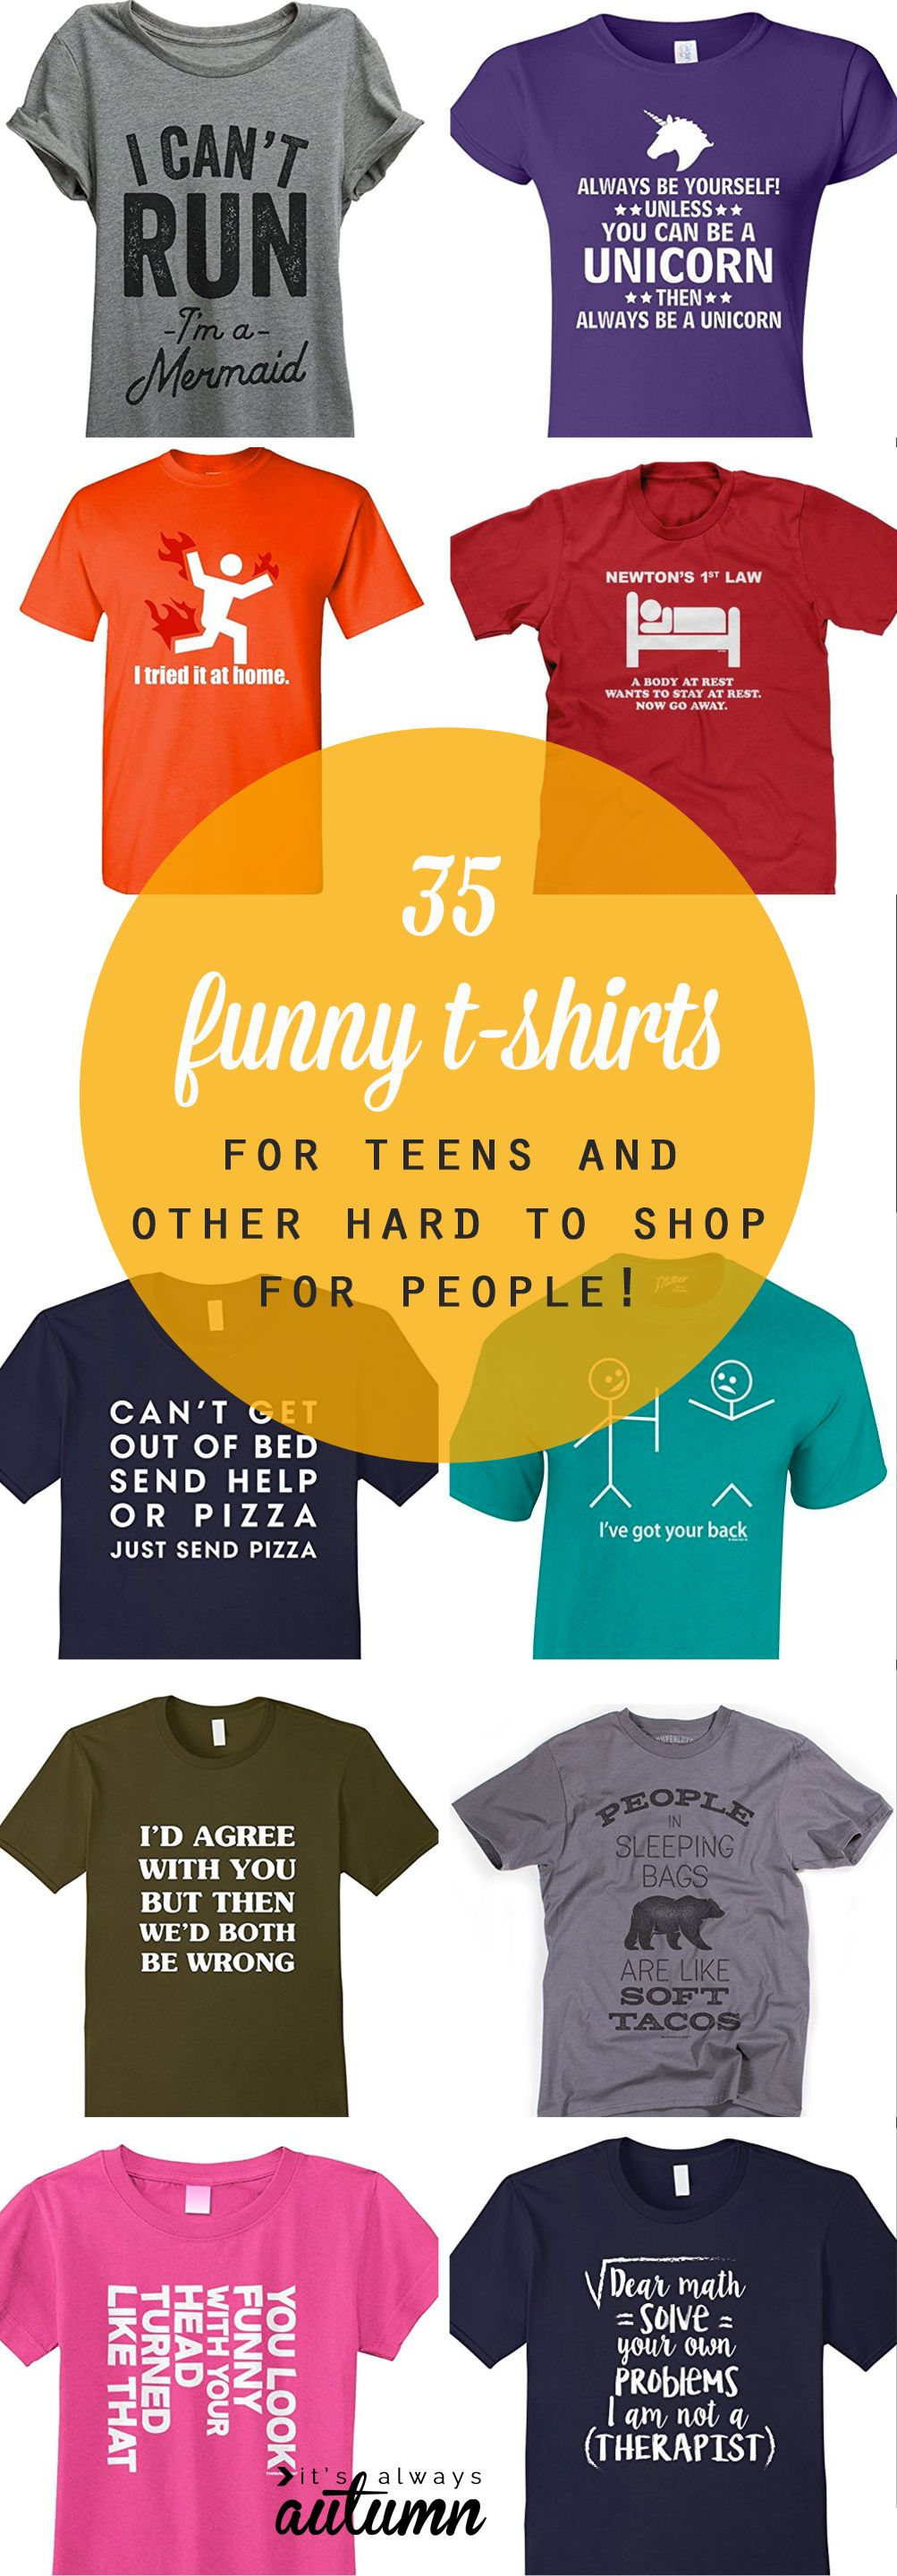 funny t-shirts for teens + other hard to shop for people - It's Always Autumn